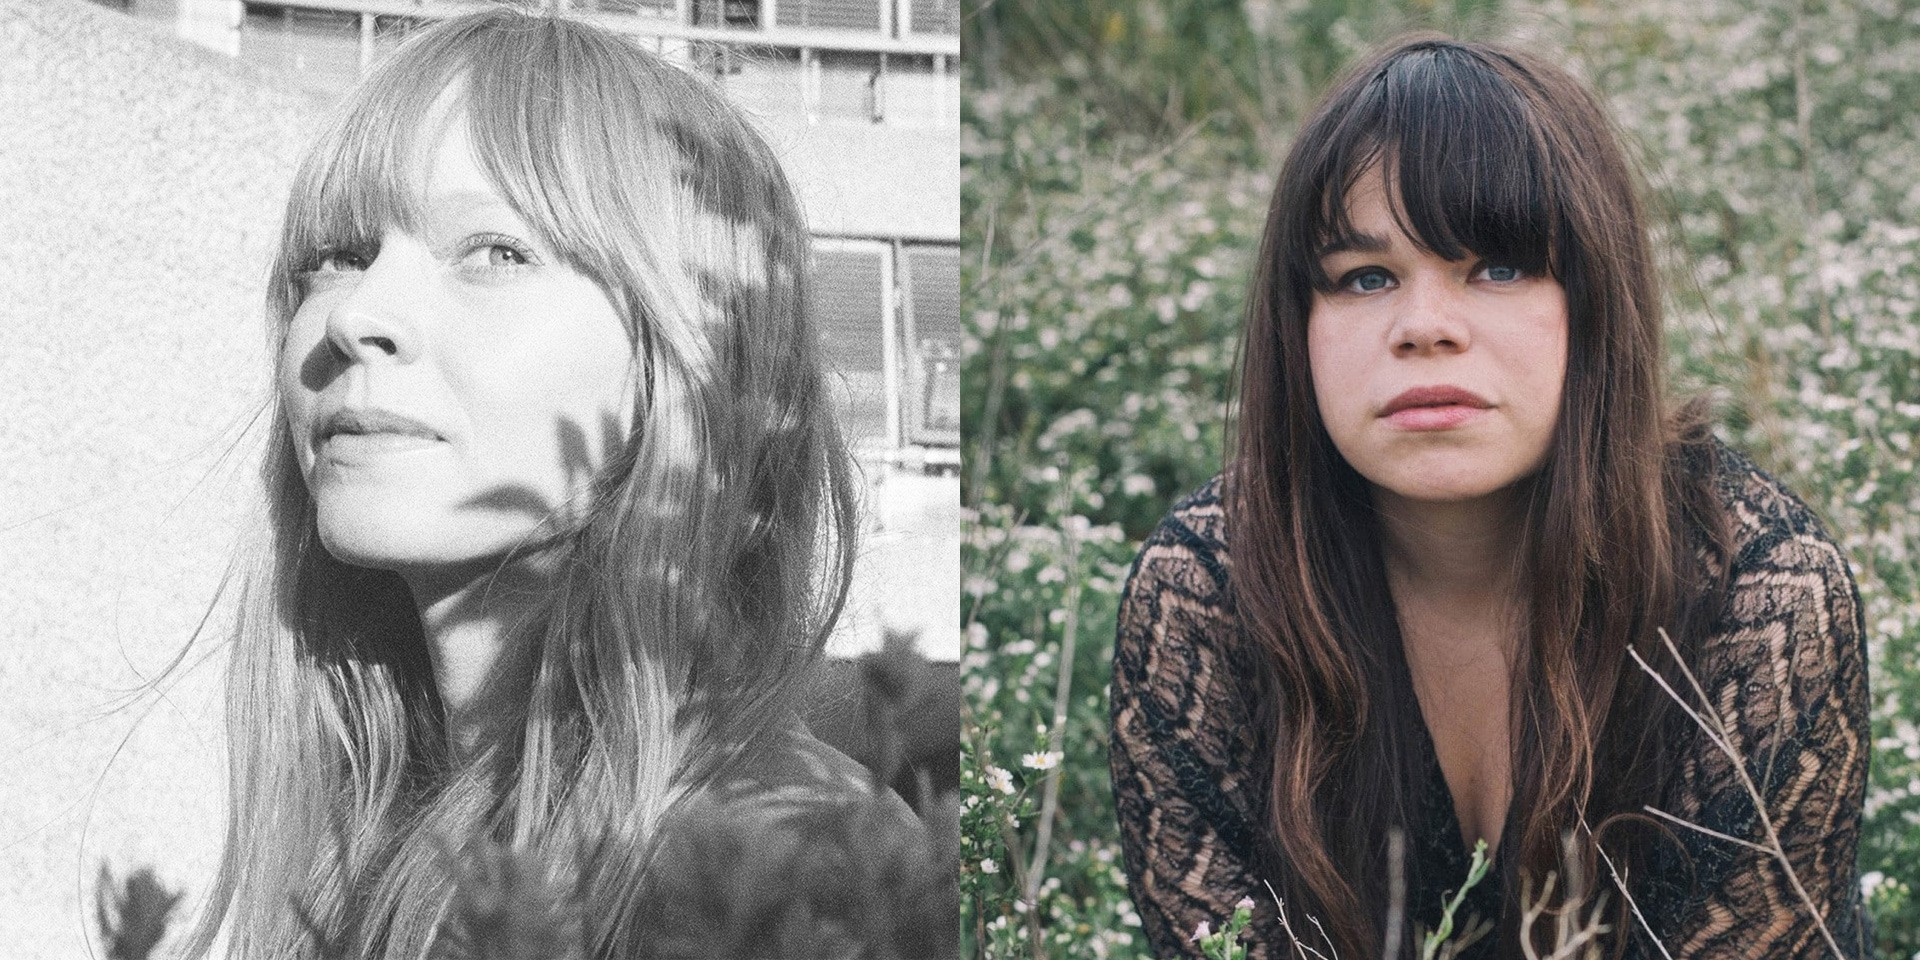 Lucy Rose launches independent label Real Kind Records, debuts first signee Samantha Crain's single 'An Echo' – listen